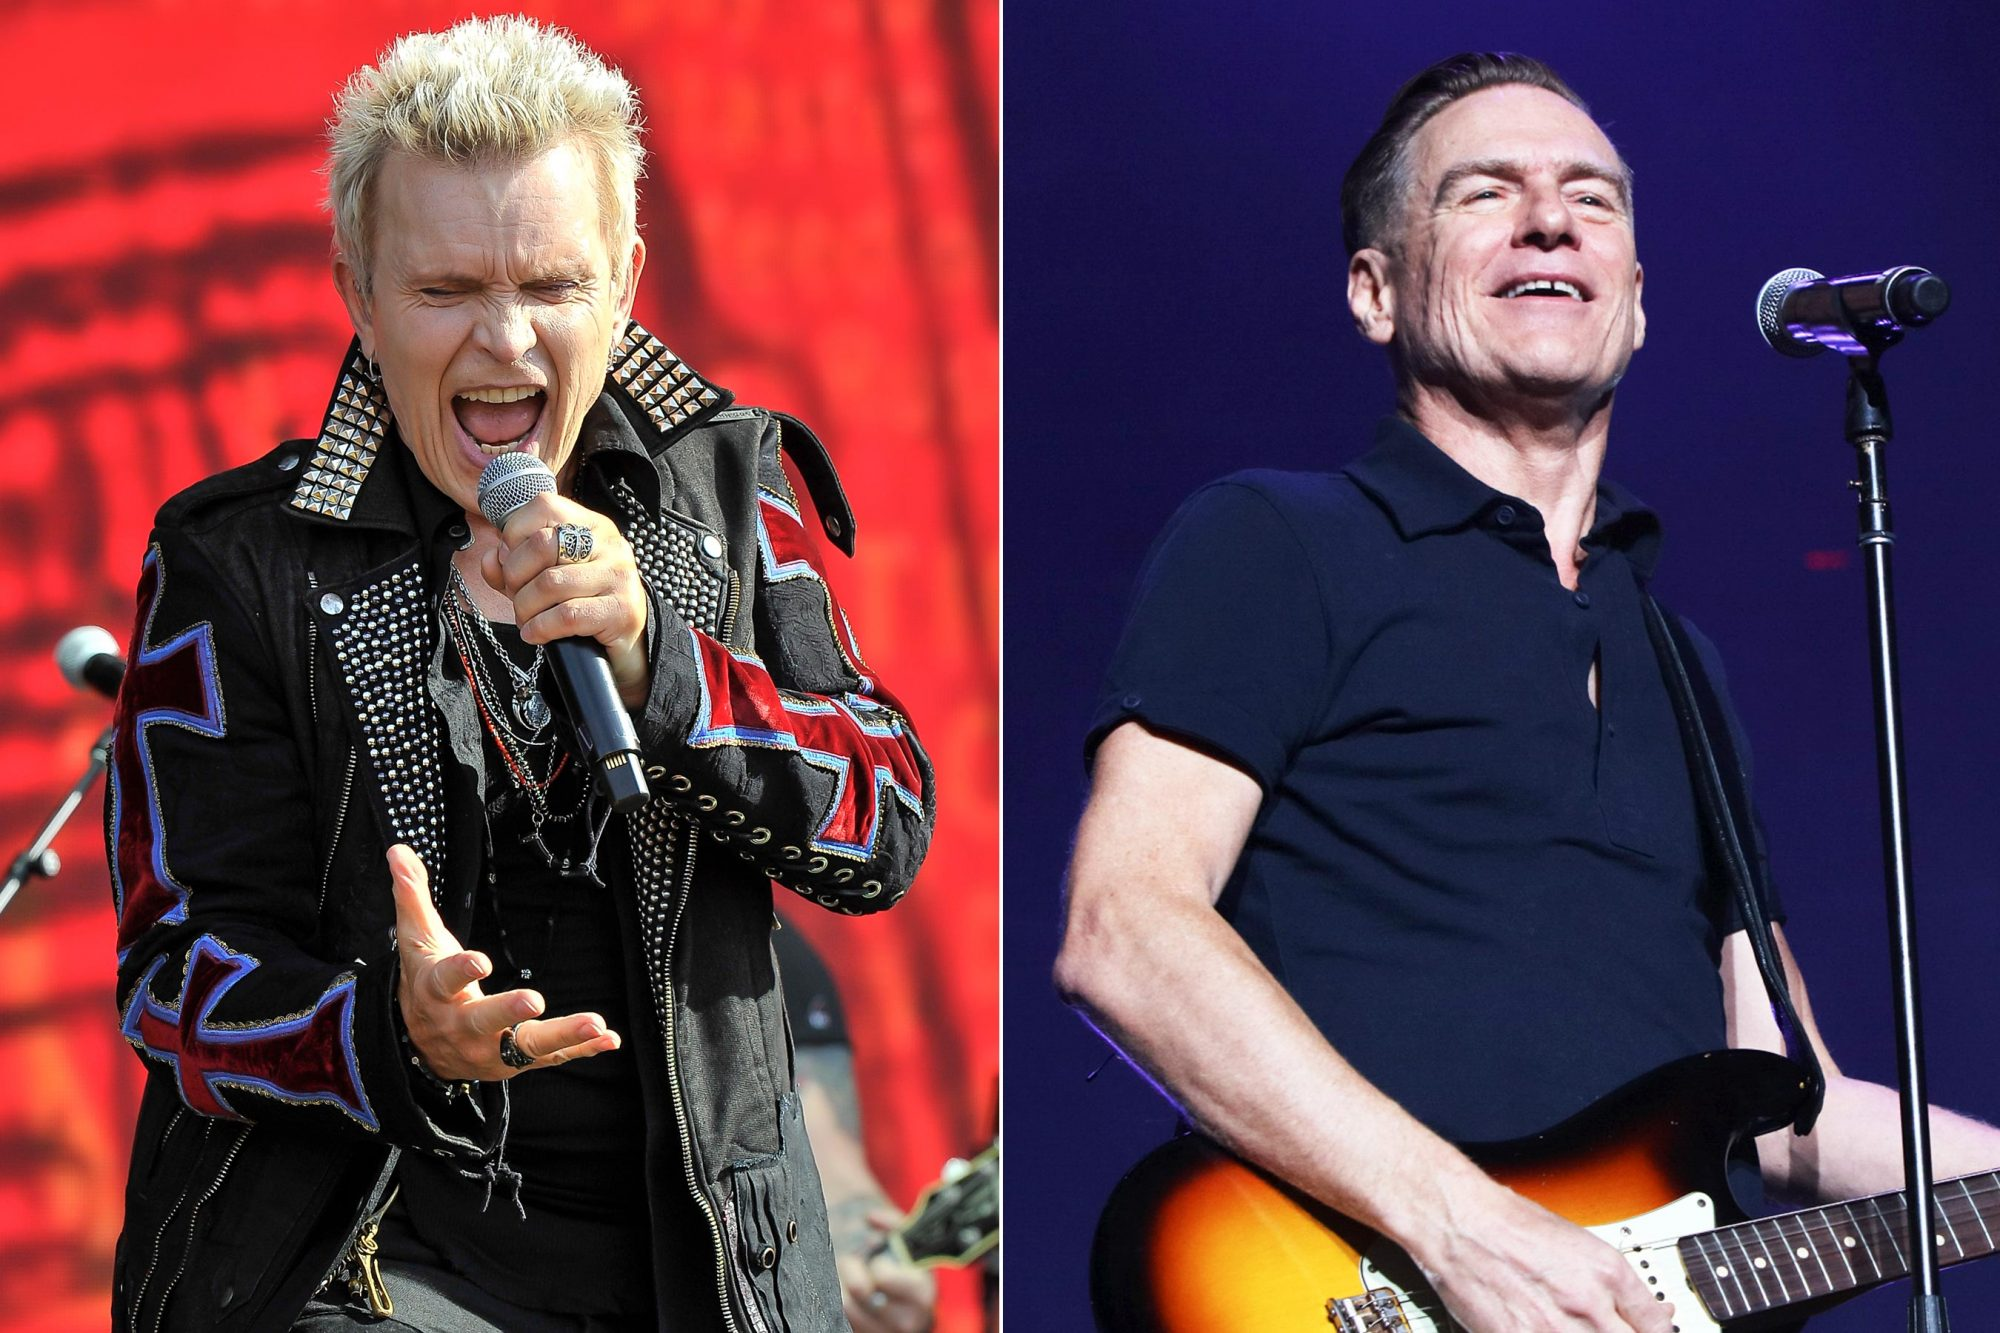 NAPA, CA - MAY 26: Billy Idol performs at BottleRock Napa Valley Music Festival at Napa Valley Expo on May 26, 2018 in Napa, California. (Photo by Steve Jennings/WireImage) NEW YORK, NY - AUGUST 23: (EXCLUSIVE COVERAGE) Bryan Adams and Billy Joel perform onstage during the 55th consecutive show of Billy Joel's residency at Madison Square Garden on August 23, 2018 in New York City. (Photo by Myrna M. Suarez/Getty Images)